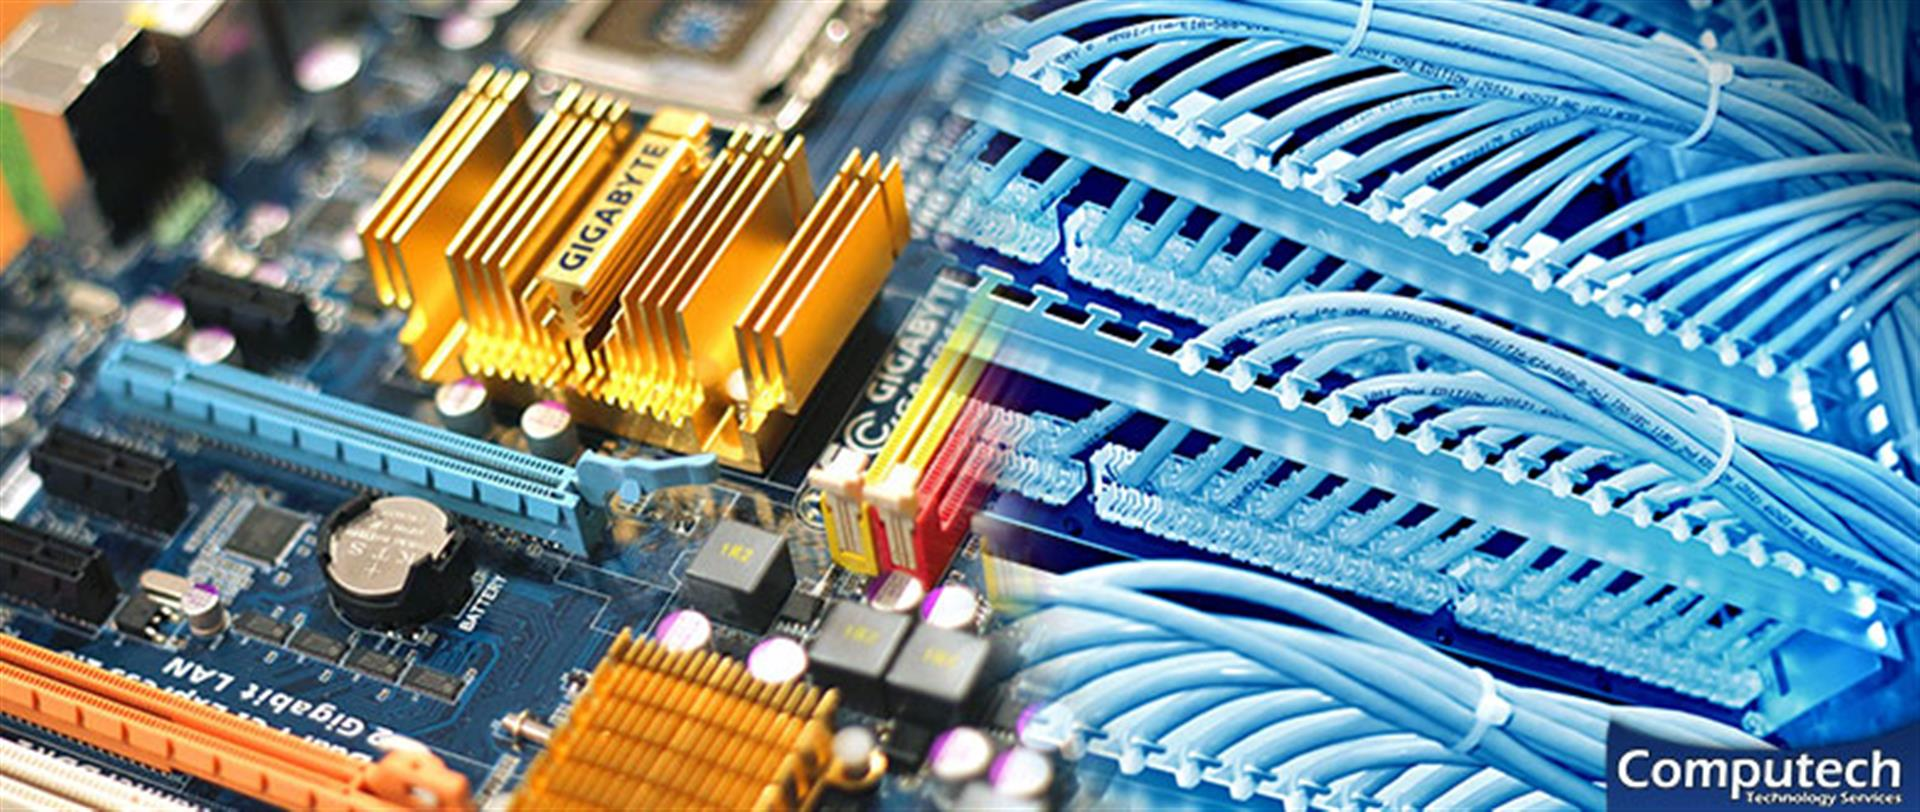 Mosheim Tennessee On Site PC and Printer Repair, Networking, Voice & Data Cabling Solutions